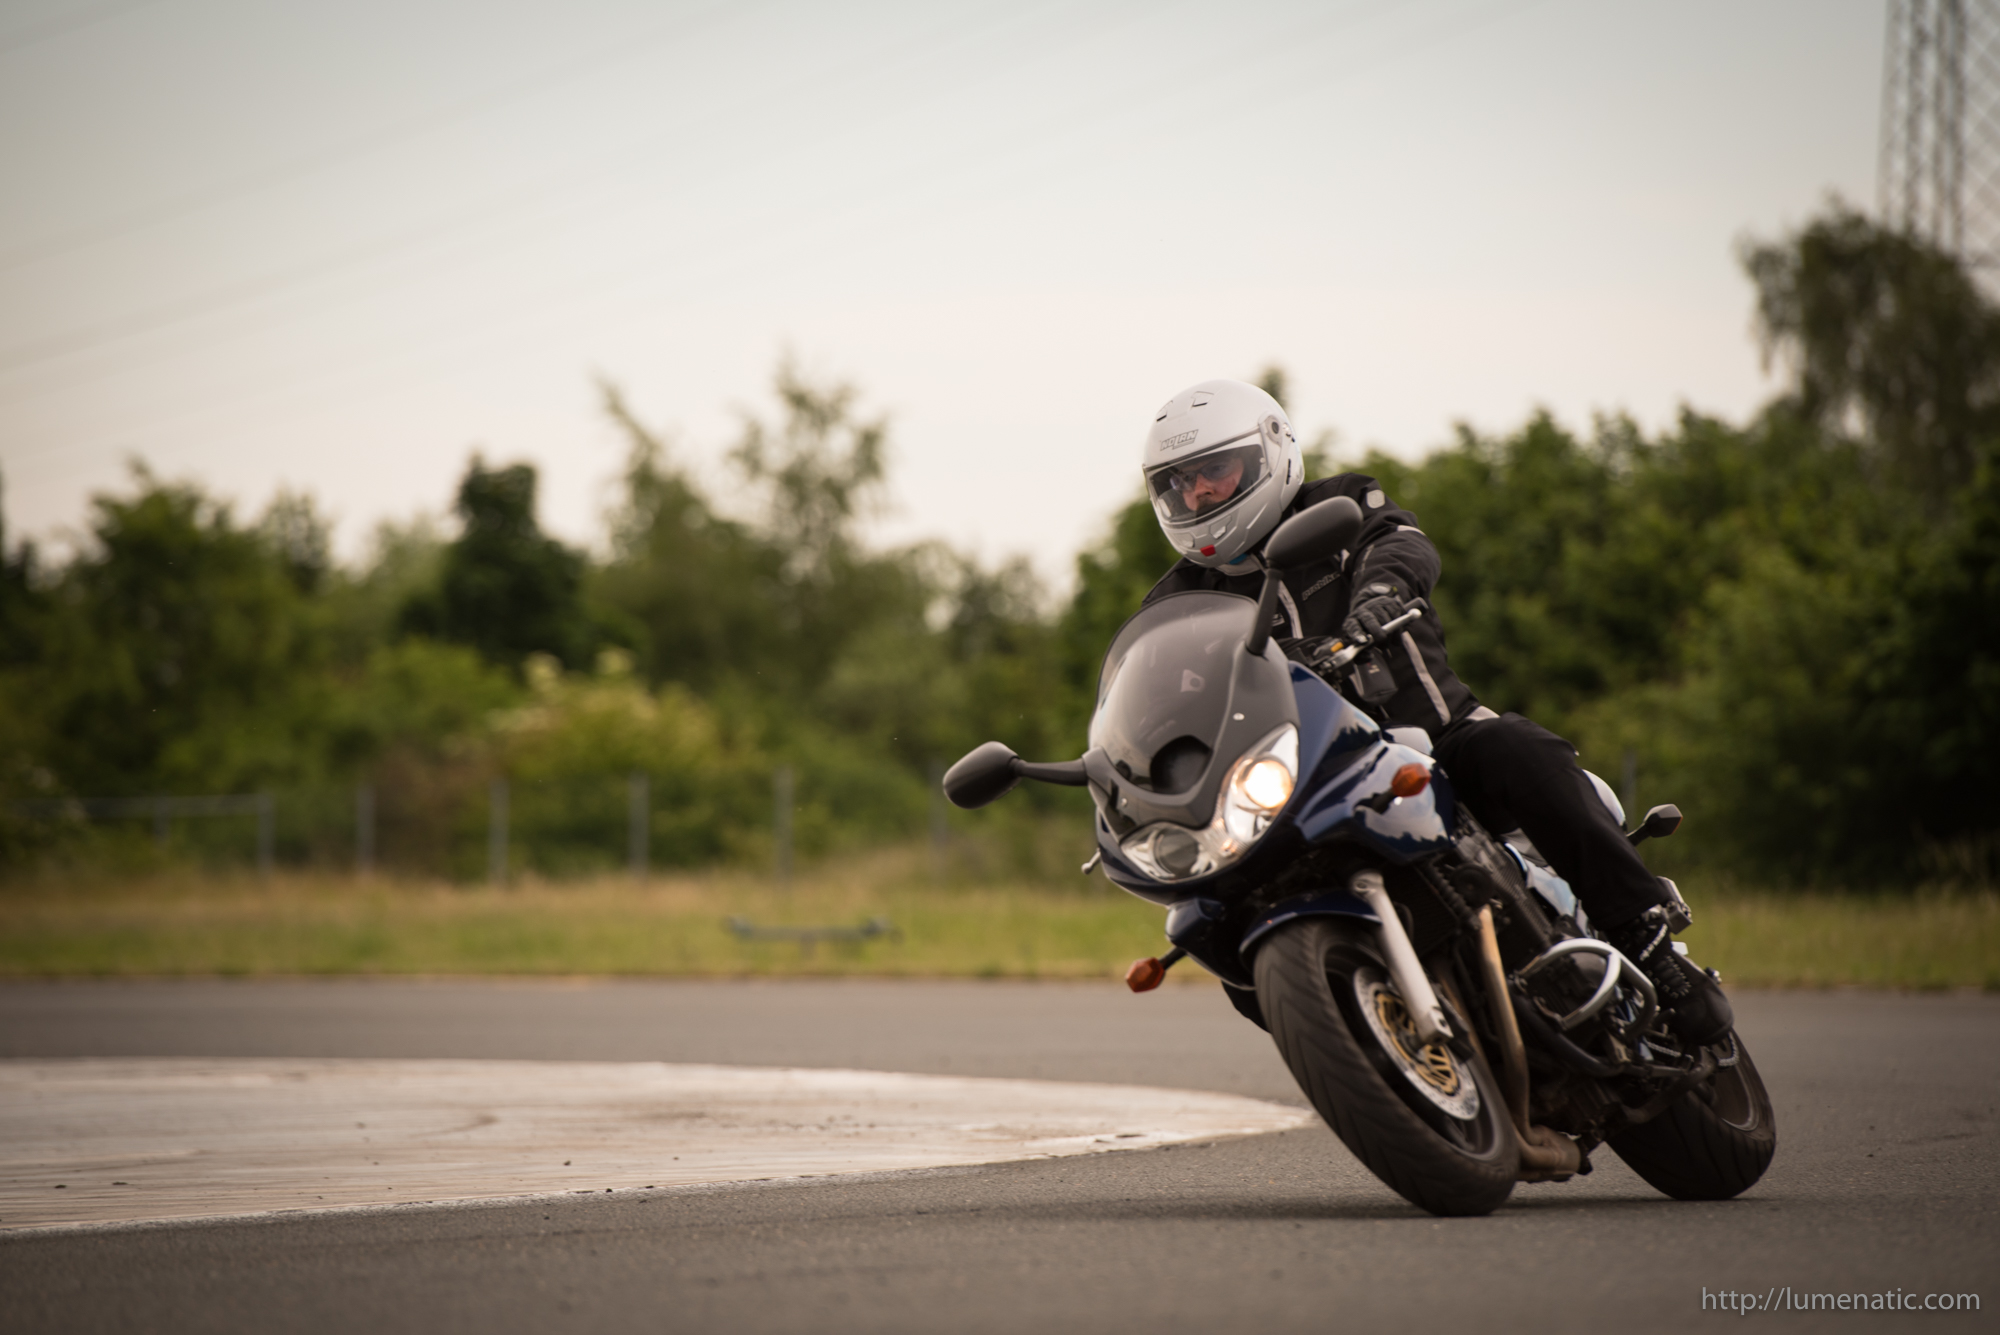 Eight tips for photographing moving bikes